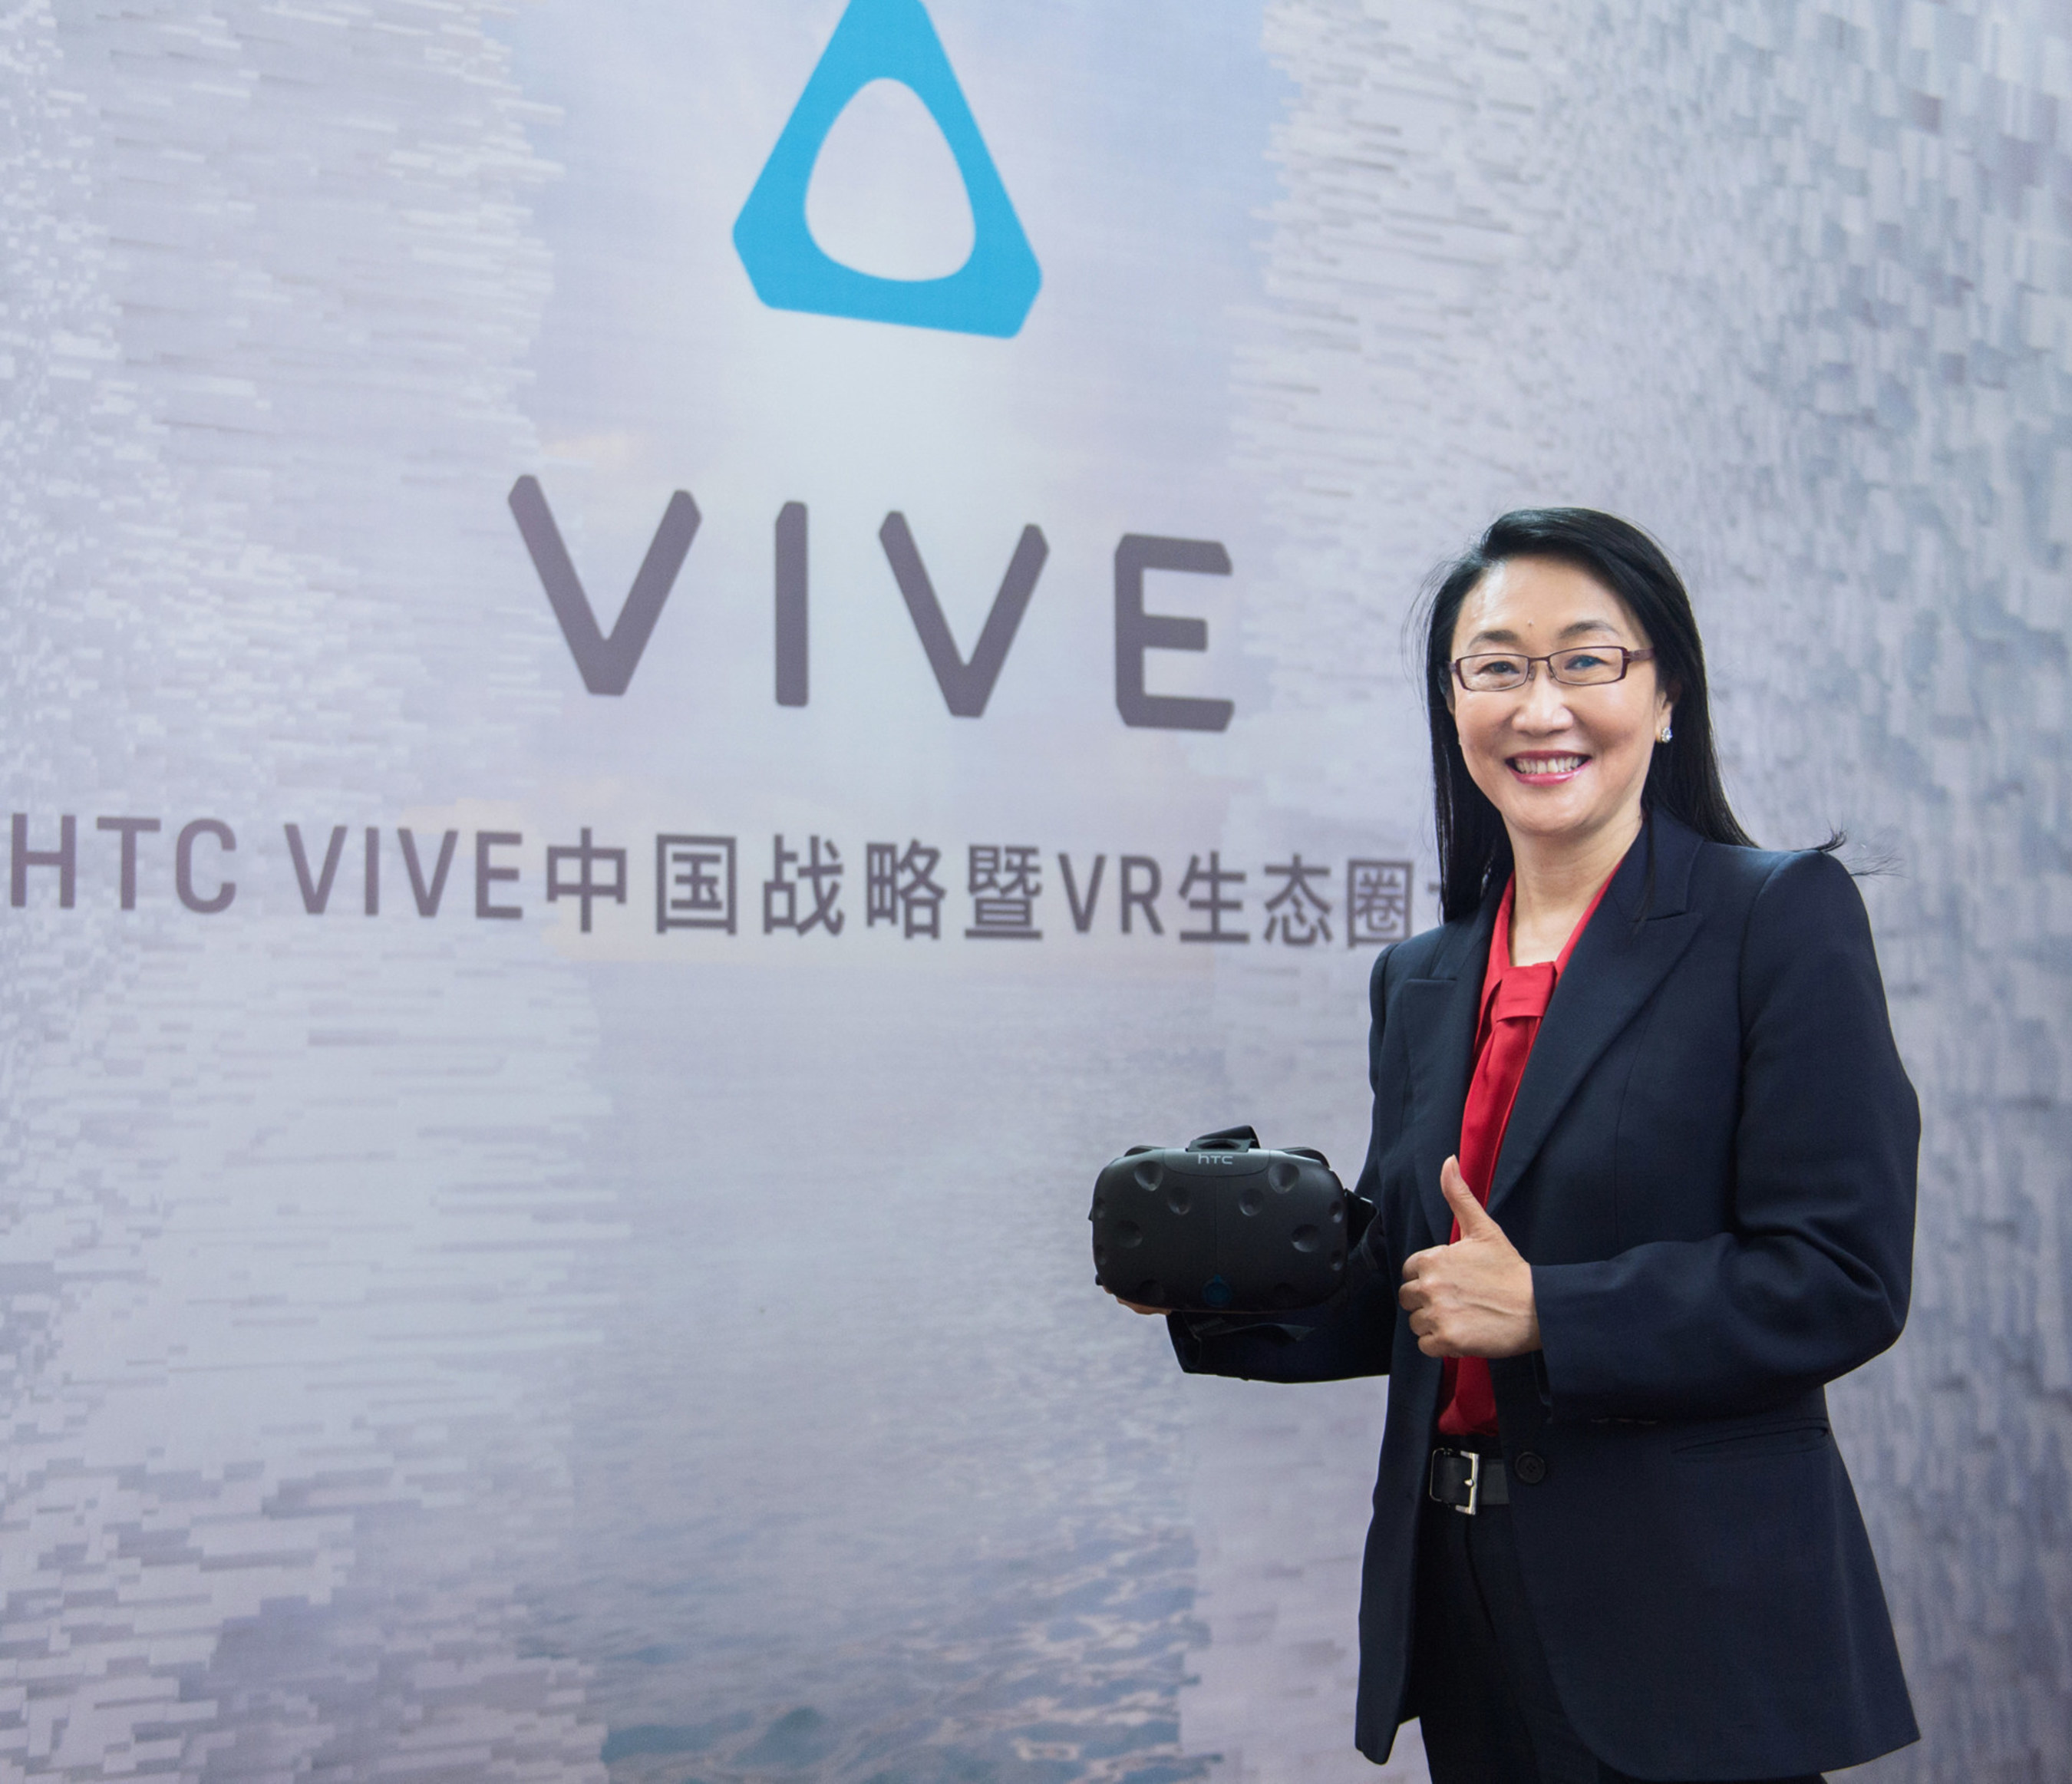 Chairwoman and CEO of HTC, Cher Wang and Vive